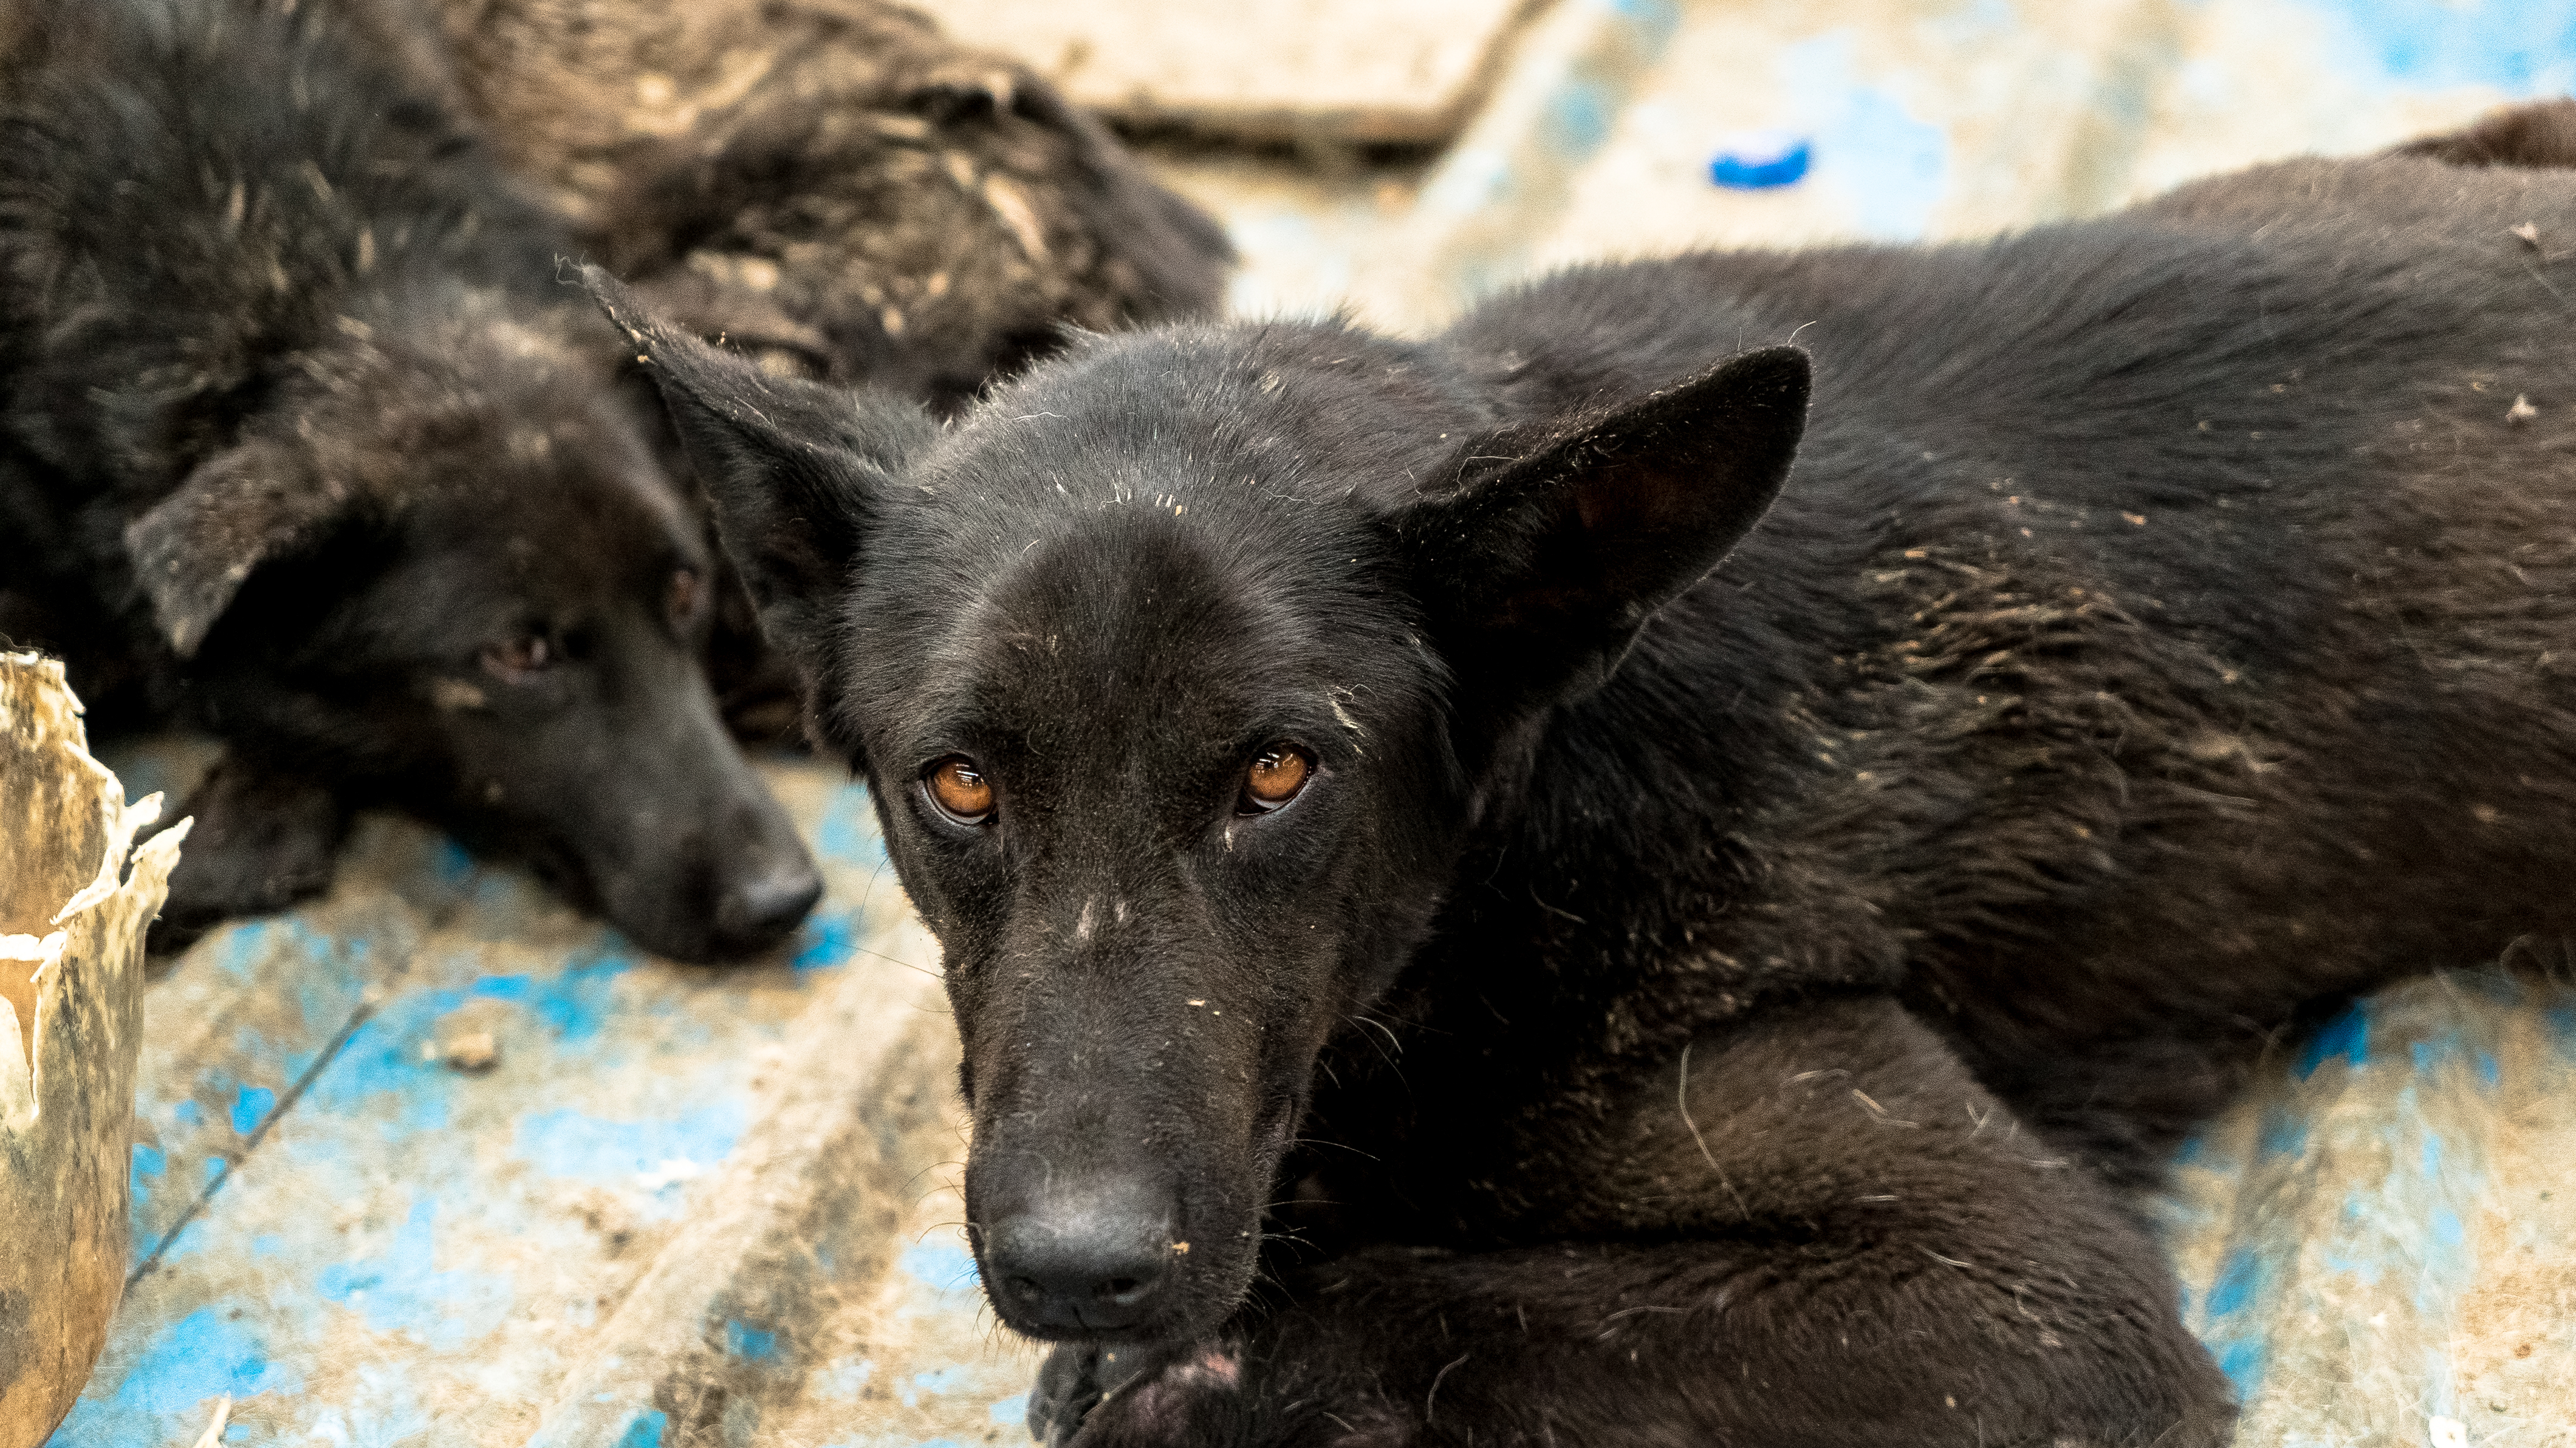 Sign Now to Stop Dog Meat